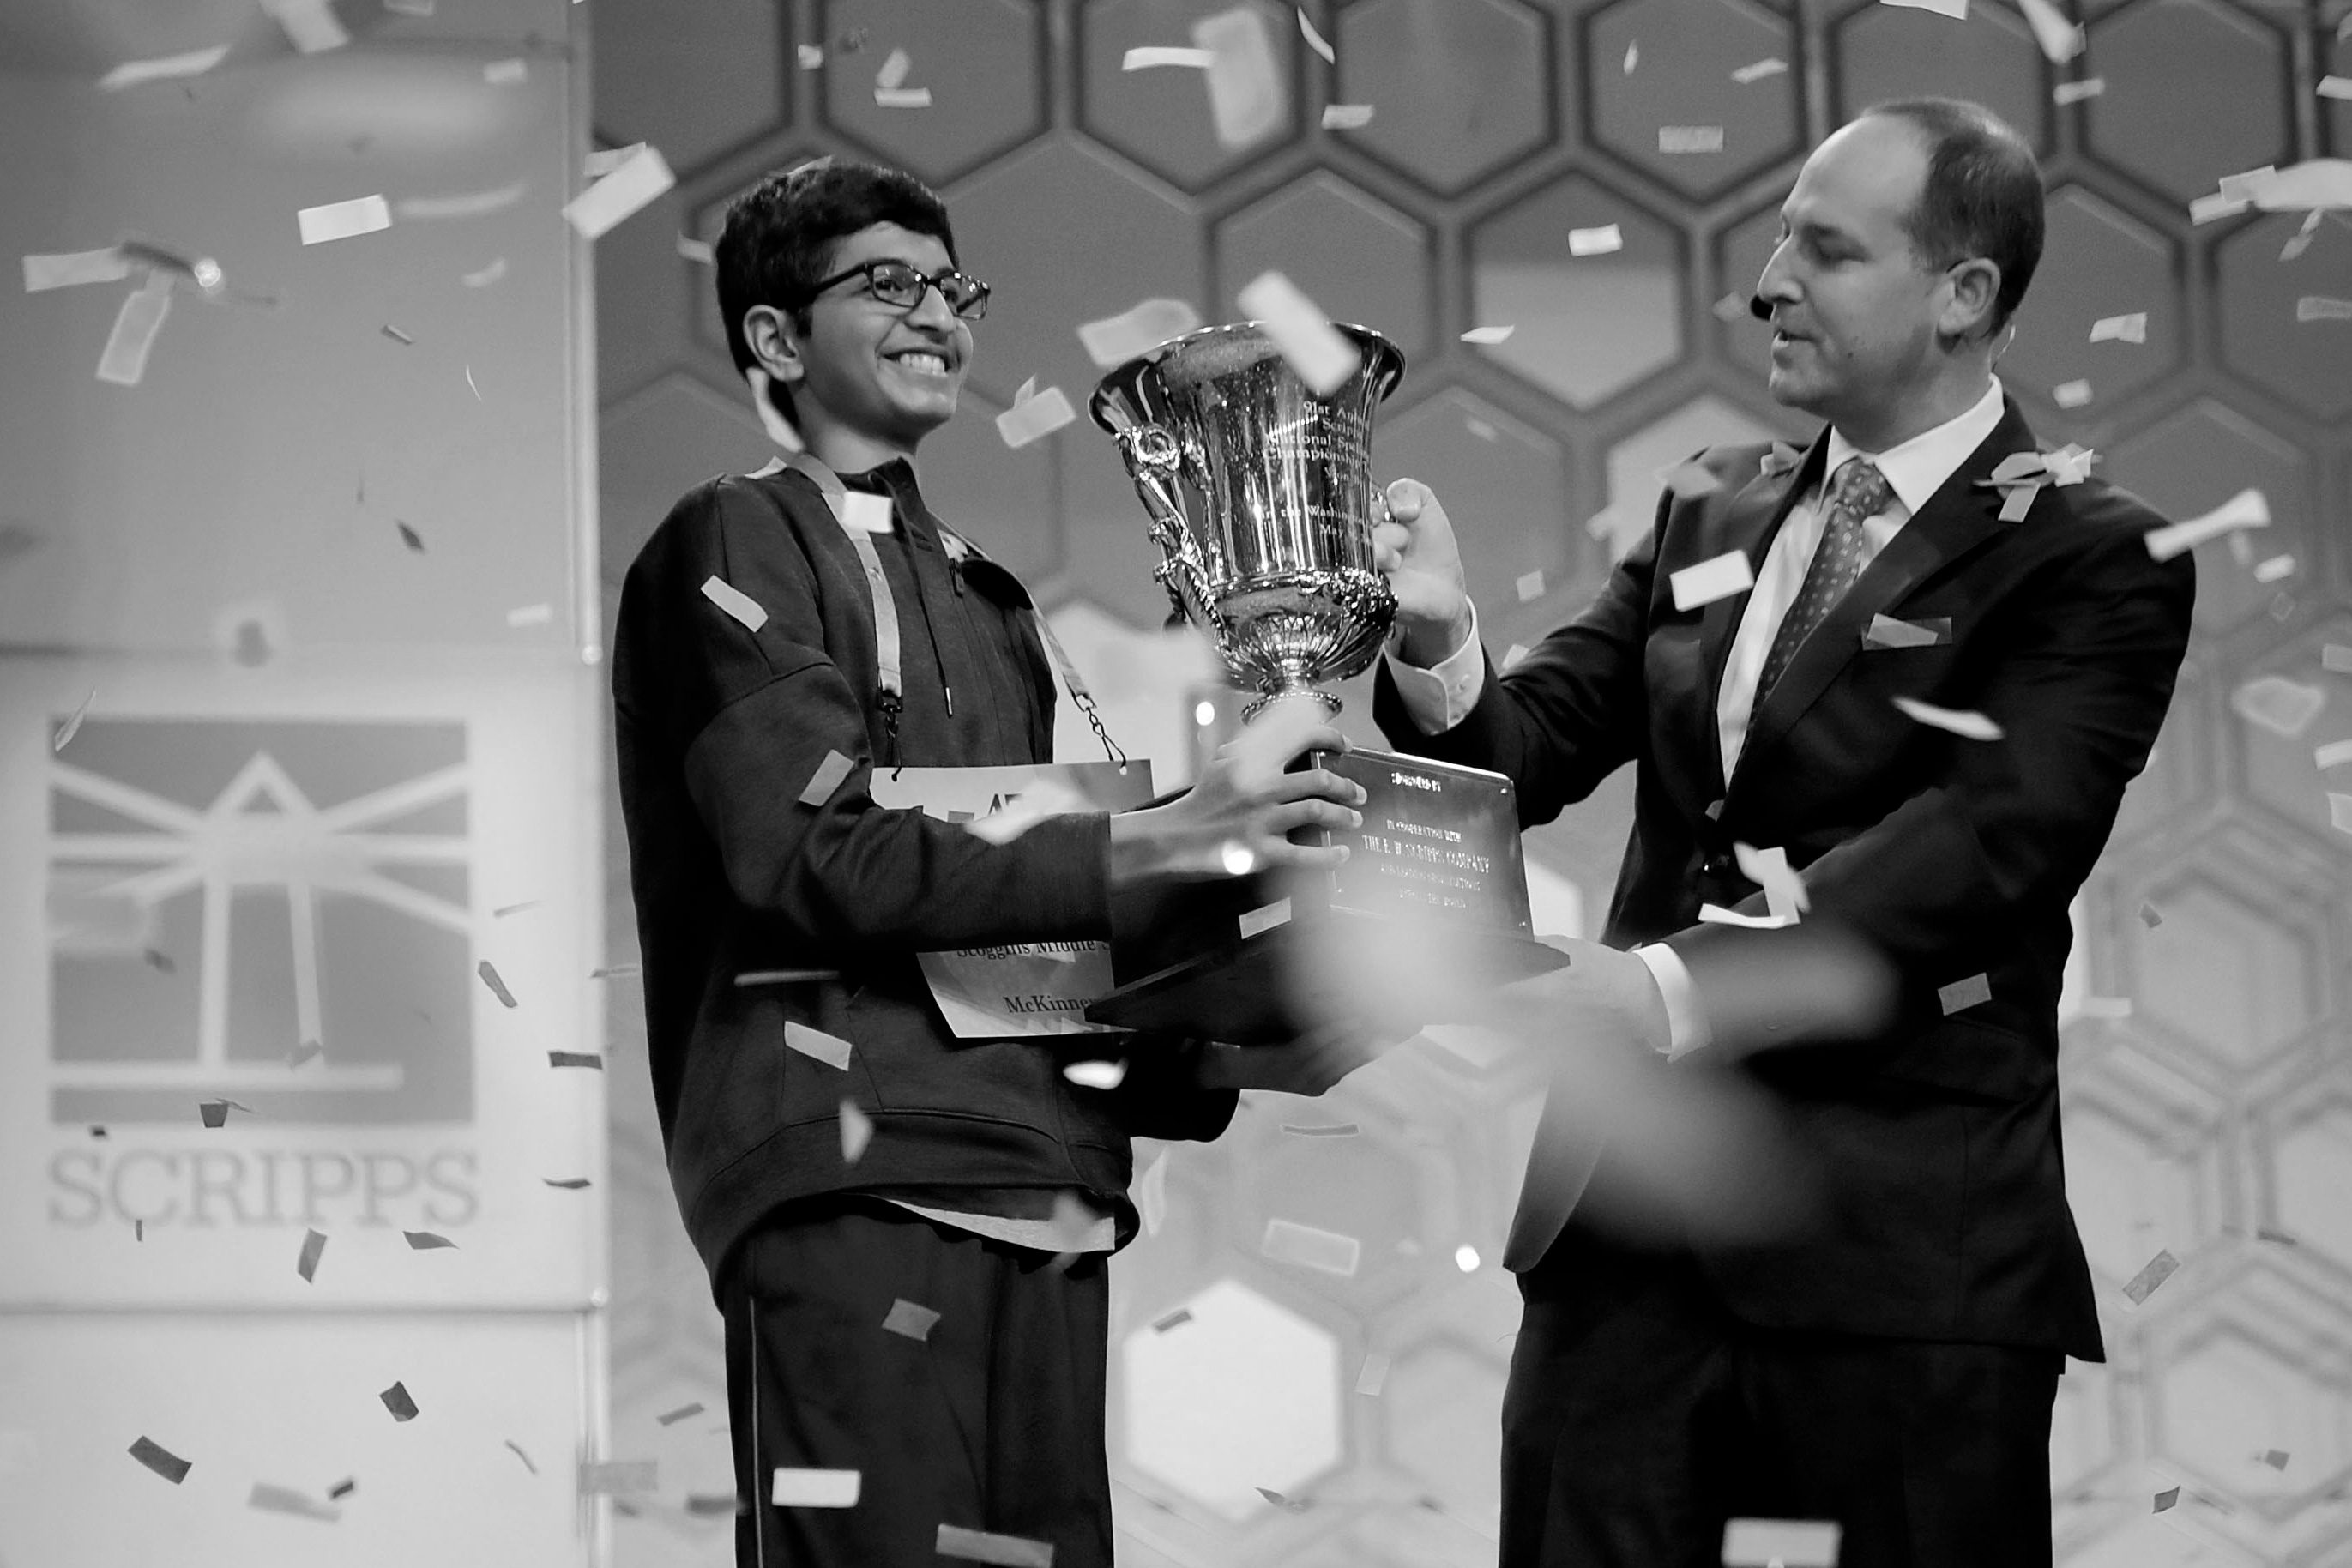 Karthik Nemmani (L) poses with the championship trophy and E.W. Scripps Company CEO Adam Symson after Nemmani correctly spelled the word 'koinonia' to win the 91st Scripps National Spelling Bee at the Gaylord National Resort and Convention Center May 31, 2018 in National Harbor, Maryland.